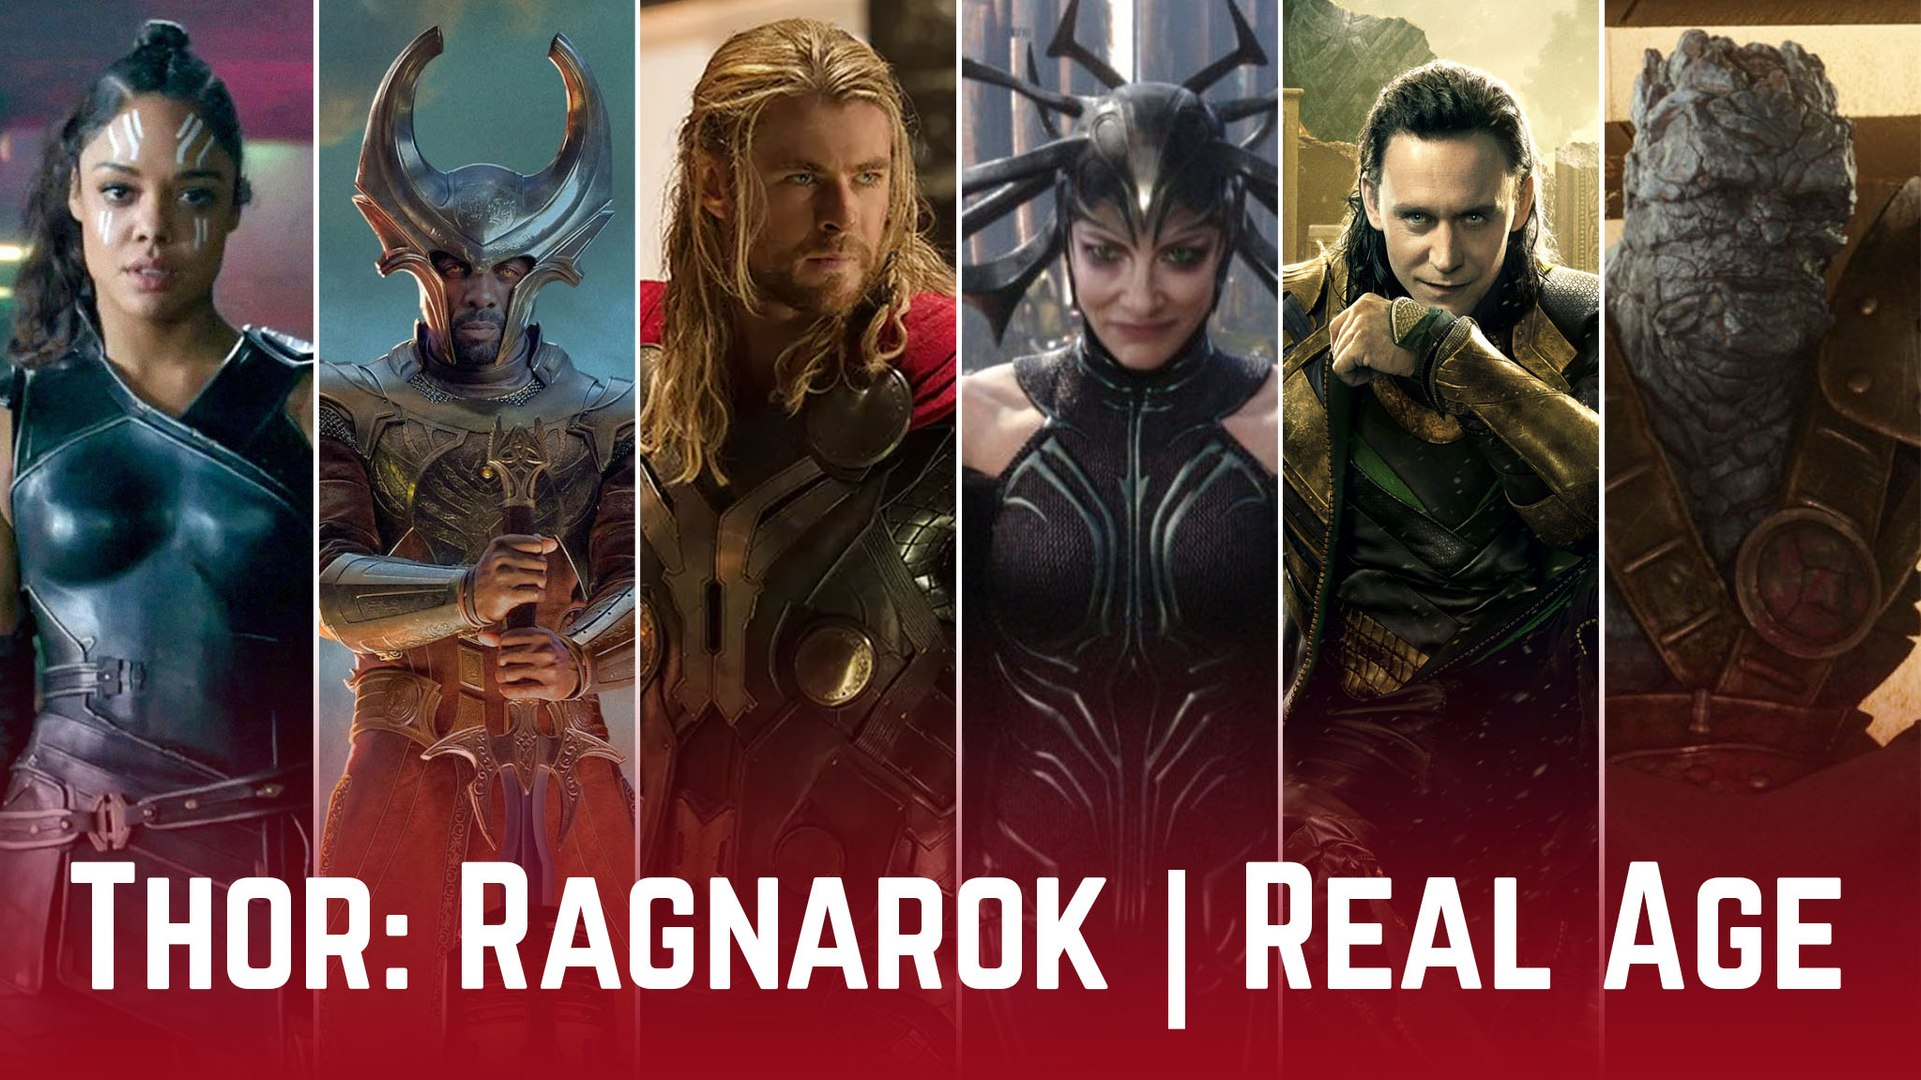 Real Age ★ Thor: Ragnarok (2017) ★ Cast ★ Thor: Ragnarok Movie